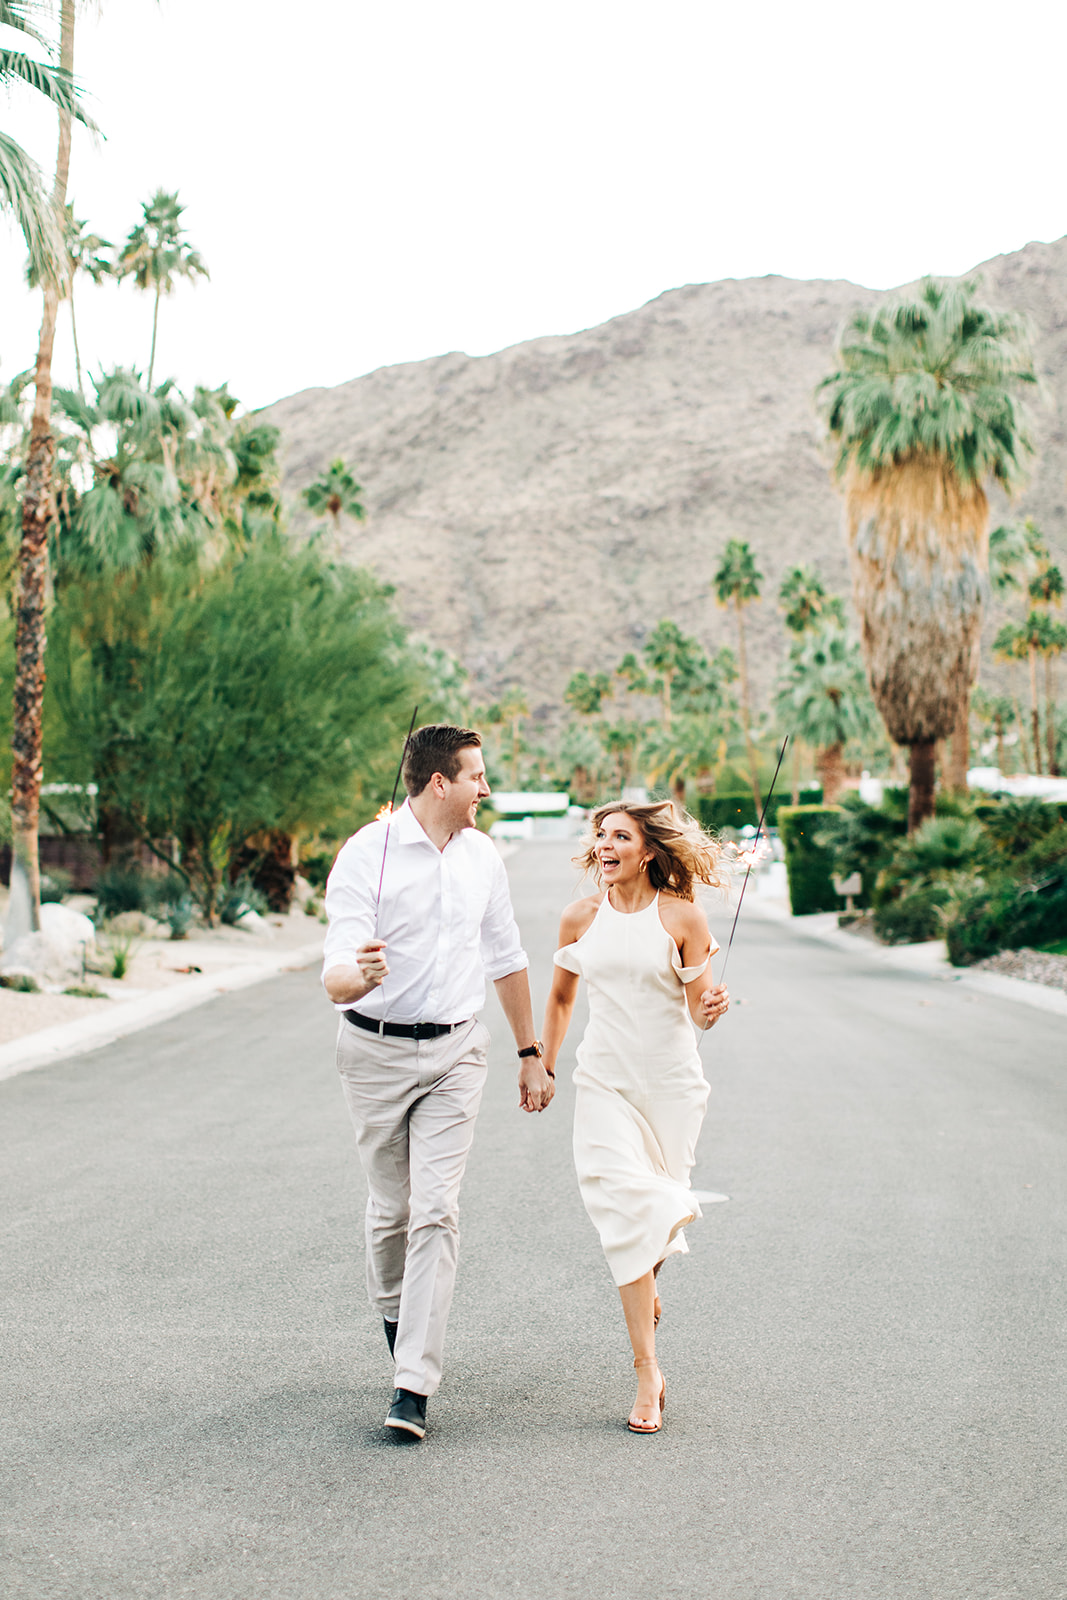 Paulina-Drew_Palm-Springs-Engagement-Photos_Clarisse-Rae_Southern-California-Wedding-Photographer-52